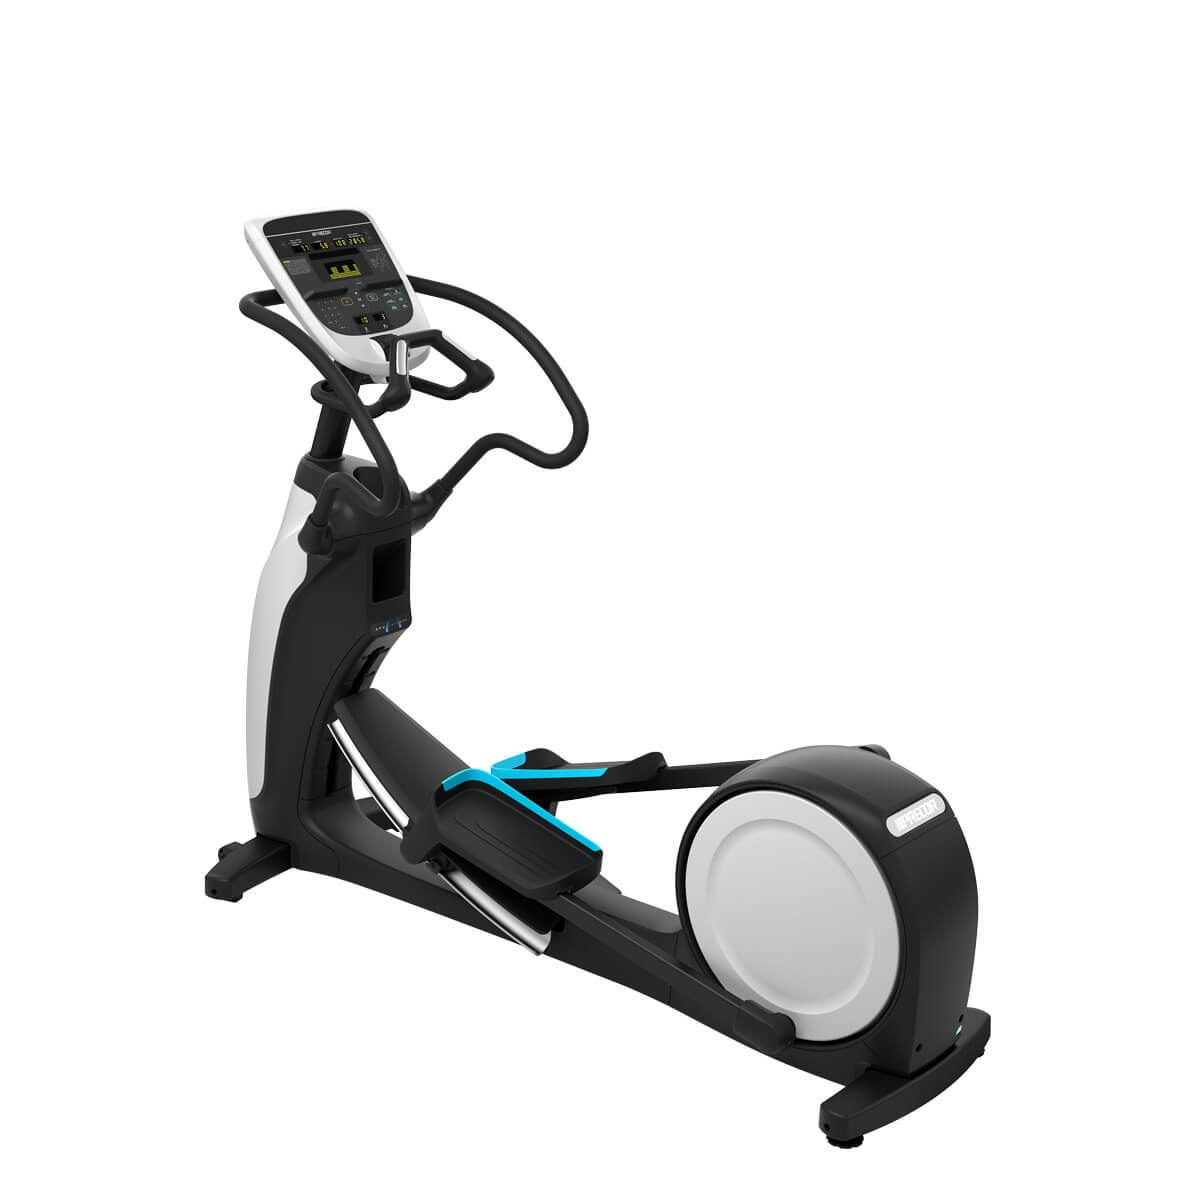 Precor EFX 833 Elliptical-Remanufactured Call 888-502-2348 For Availability and Best Pricing